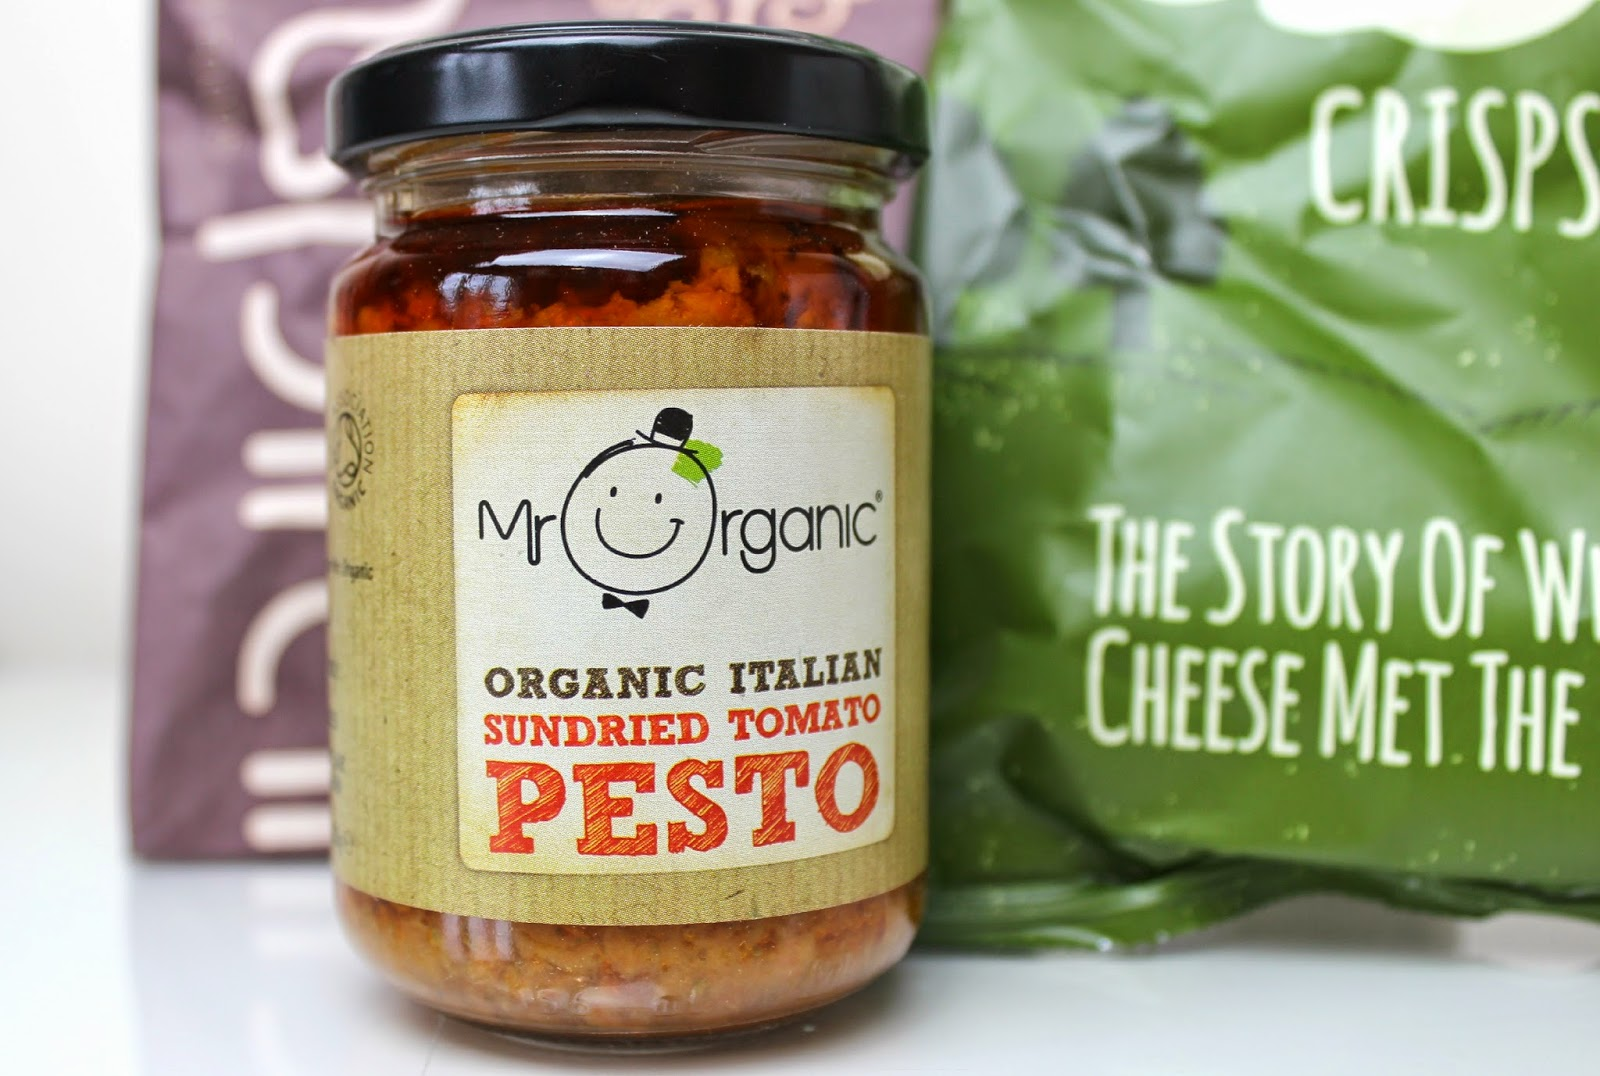 A picture of Mr Organic Organic Italian Sundried Tomato Pesto